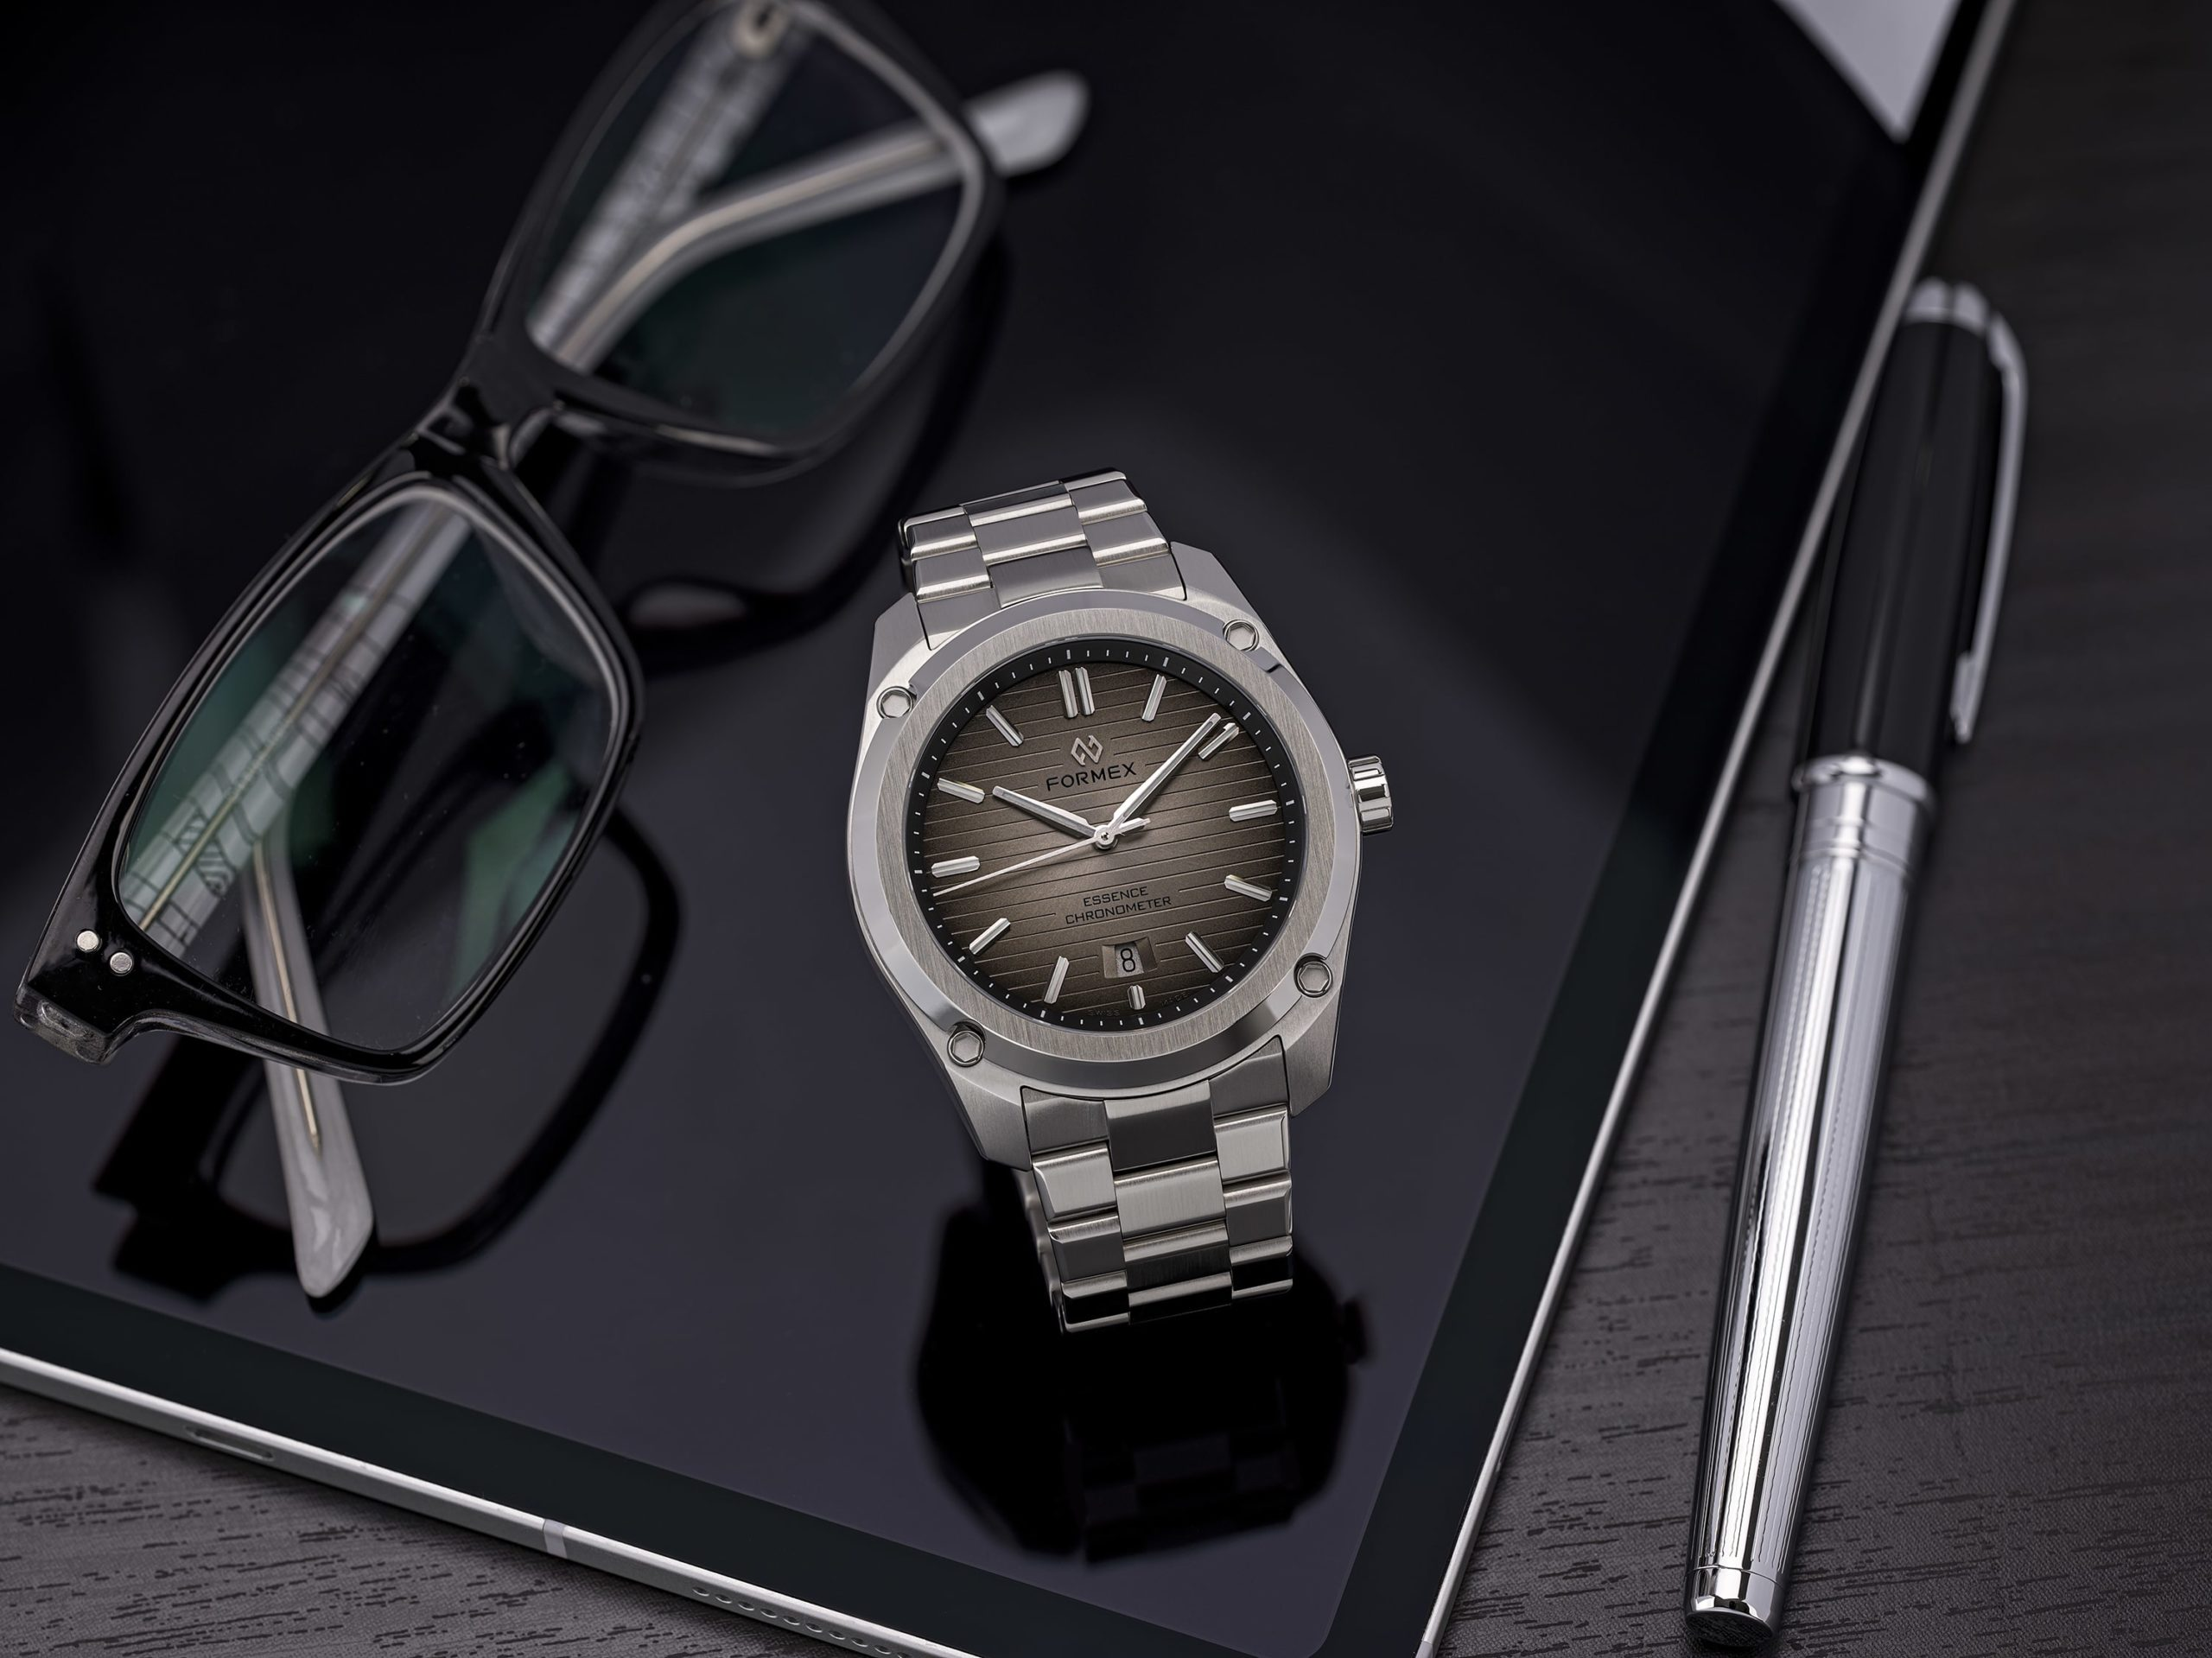 Introducing the Formex Essence FortyThree Automatic Chronometer